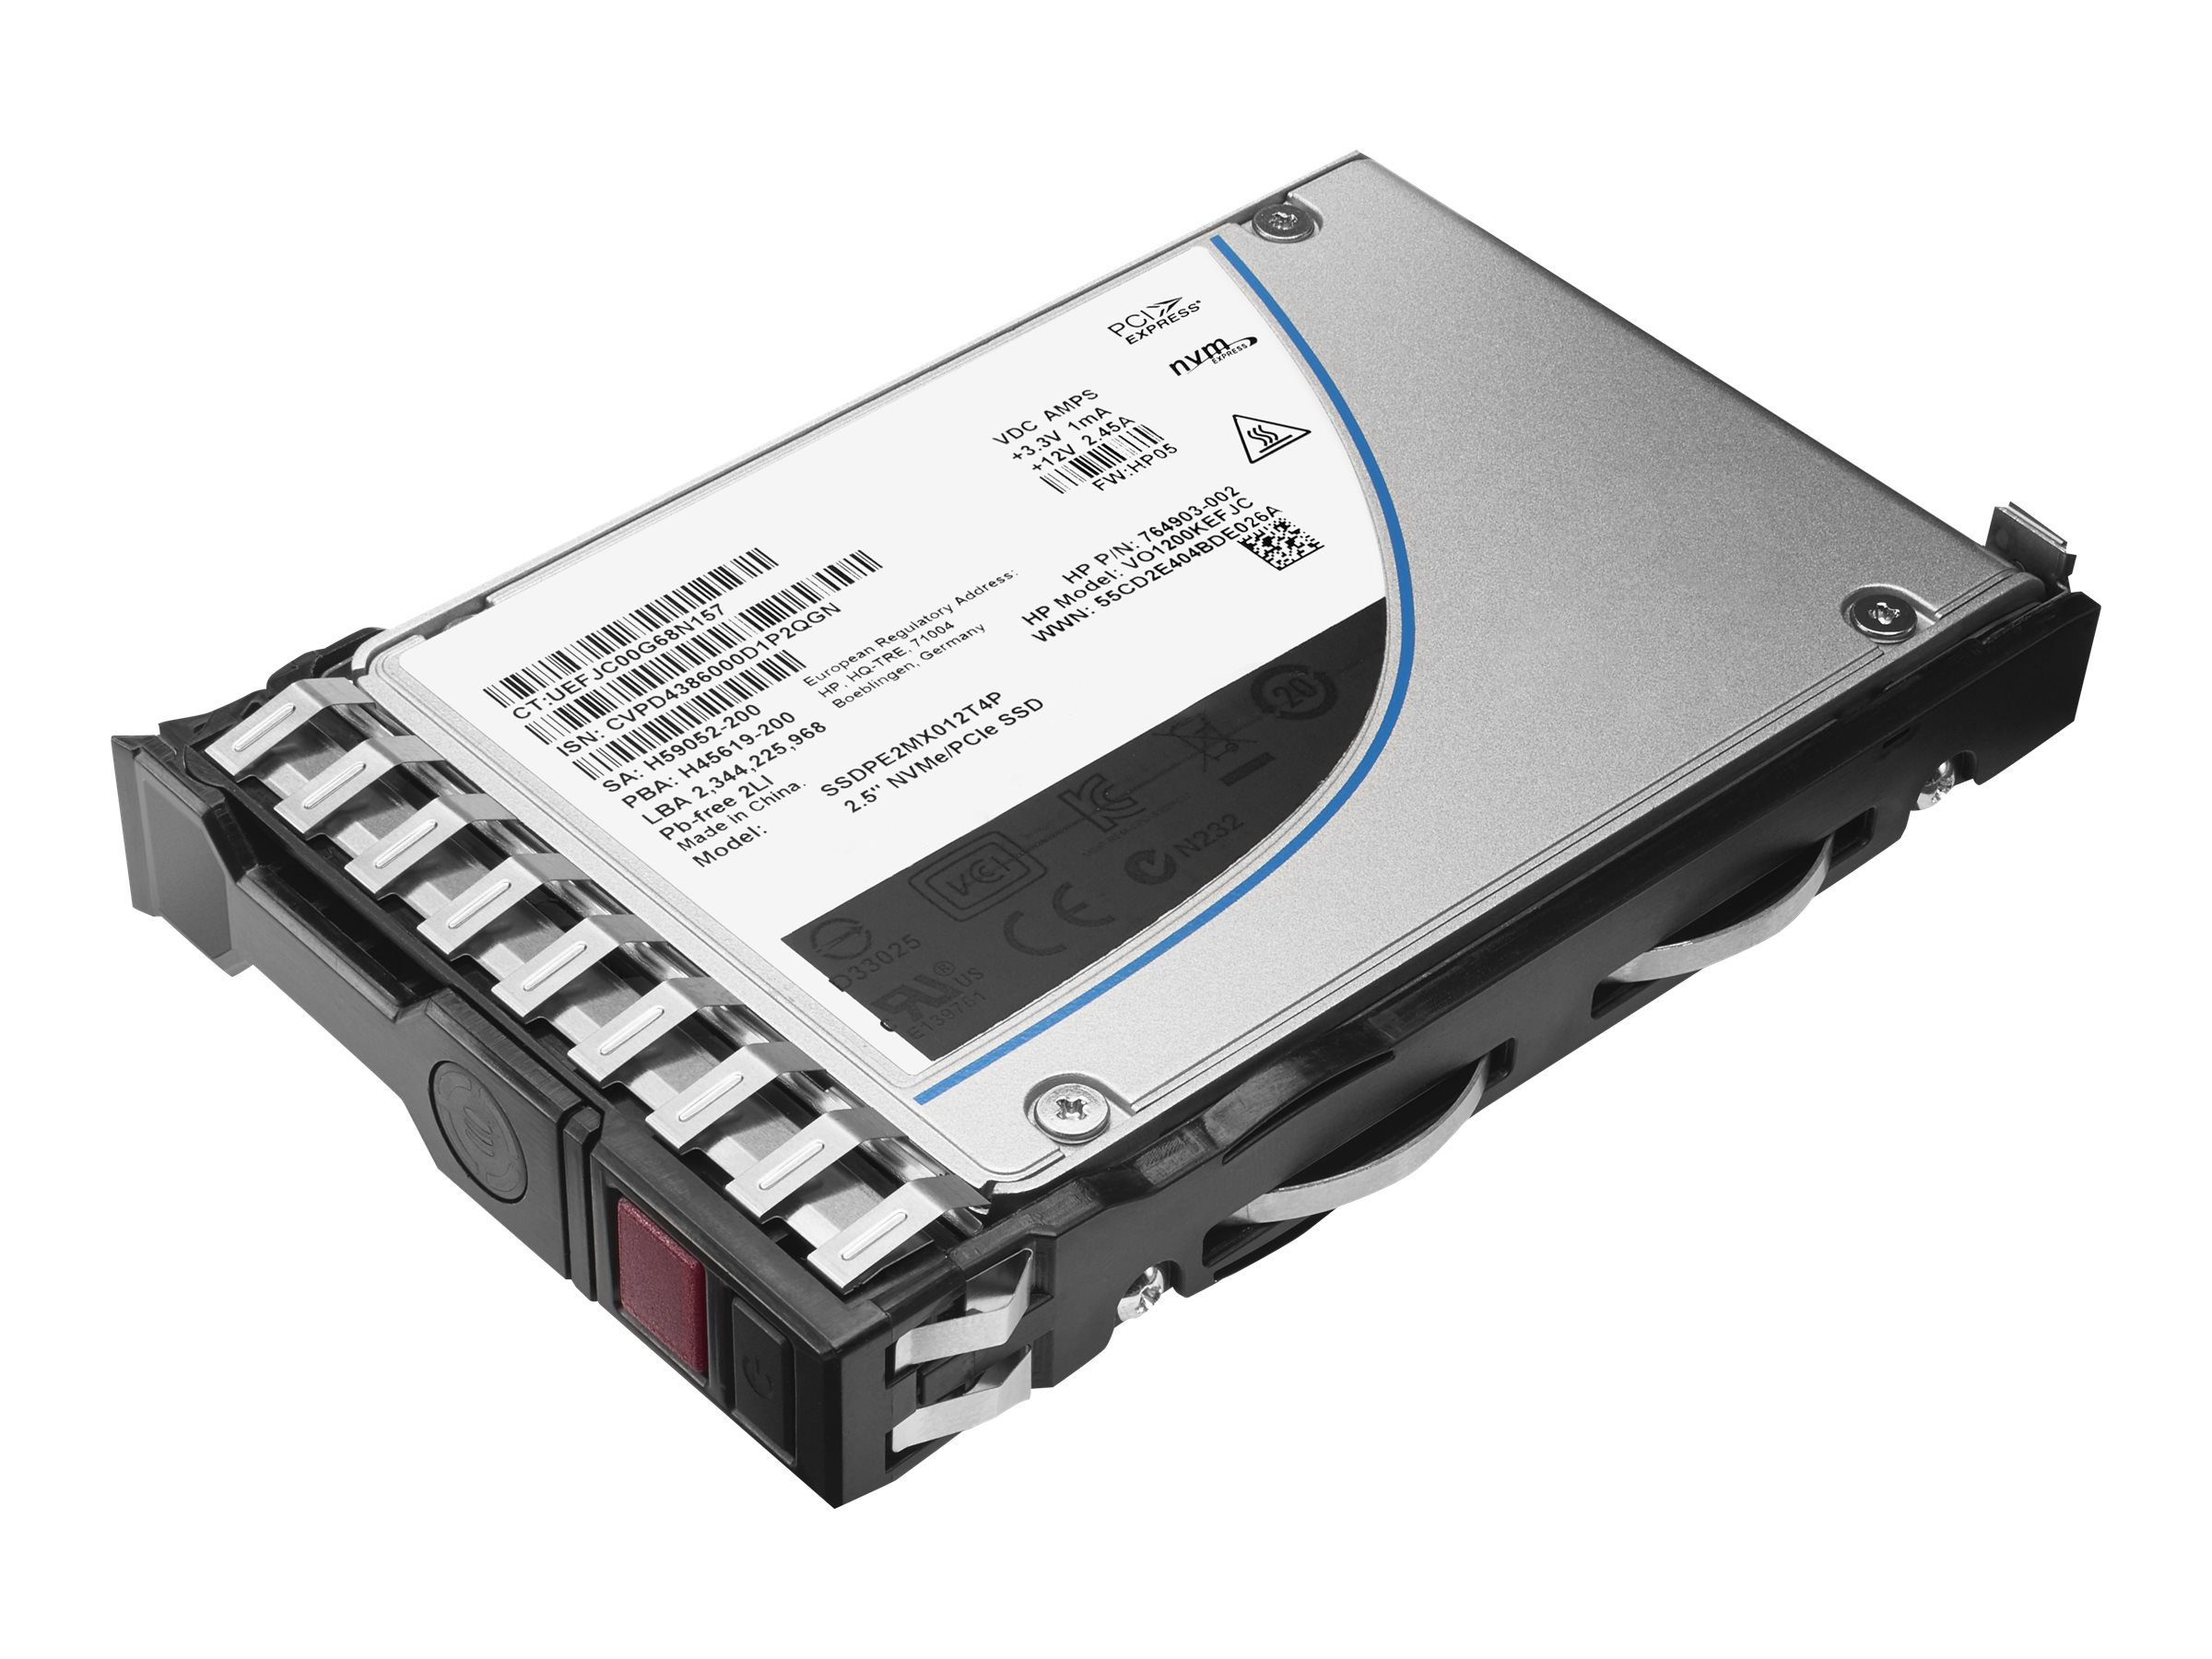 HPE 480GB SATA 6Gb s Read Intensive-3 LFF 3.5 SC Converter Solid State Drive